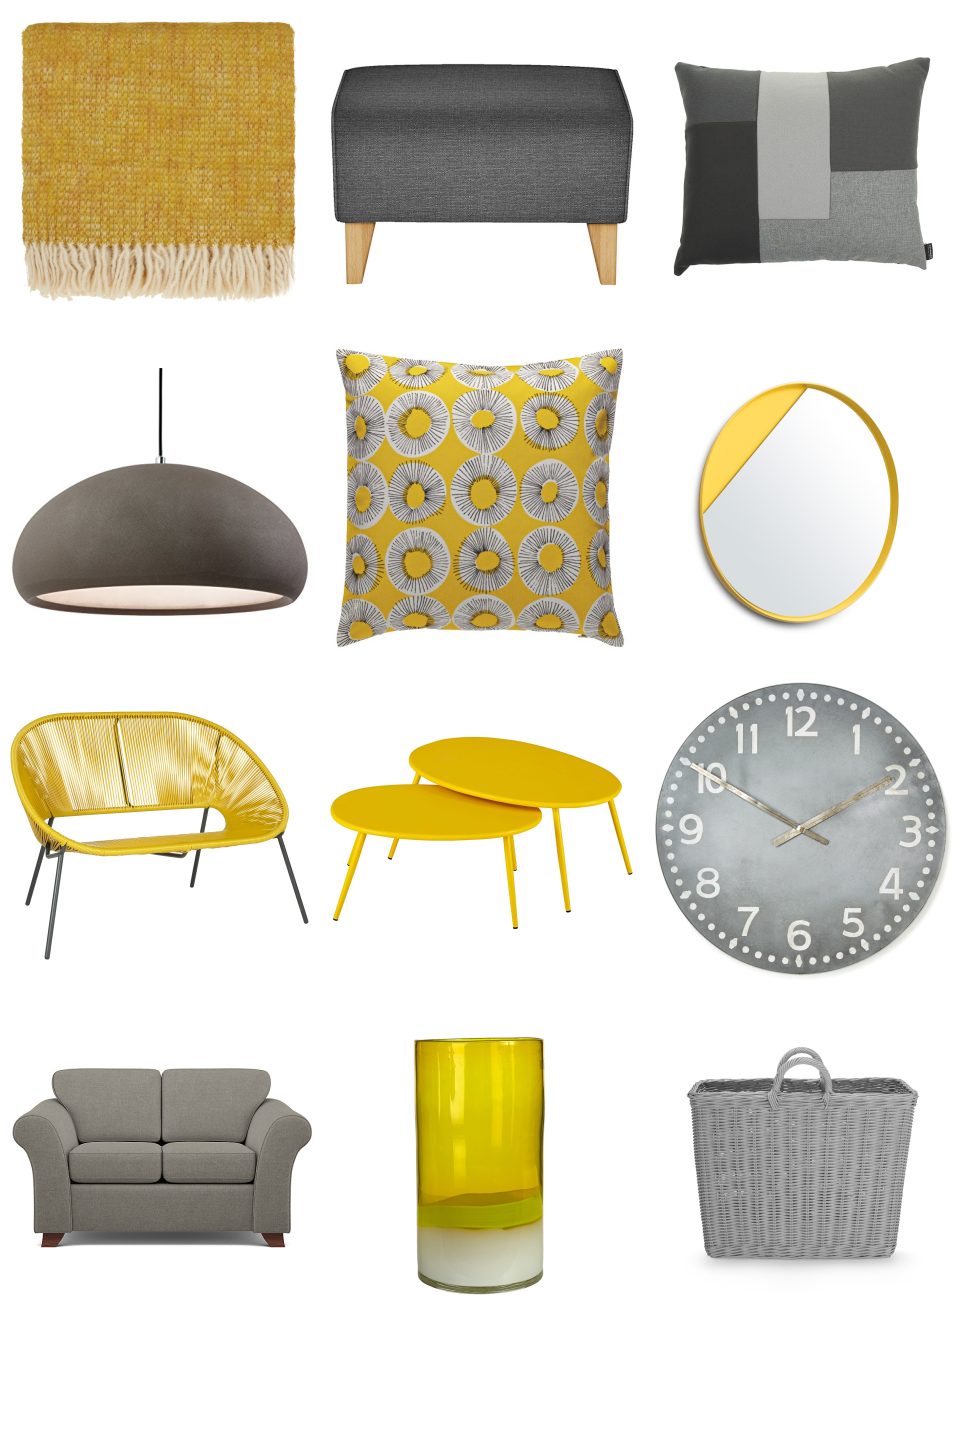 Yellow Grey Decor Furnishful S Other Ideas Inspiration Boards Furnishful Grey And Yellow Living Room Yellow Decor Living Room Yellow Living Room Accessories